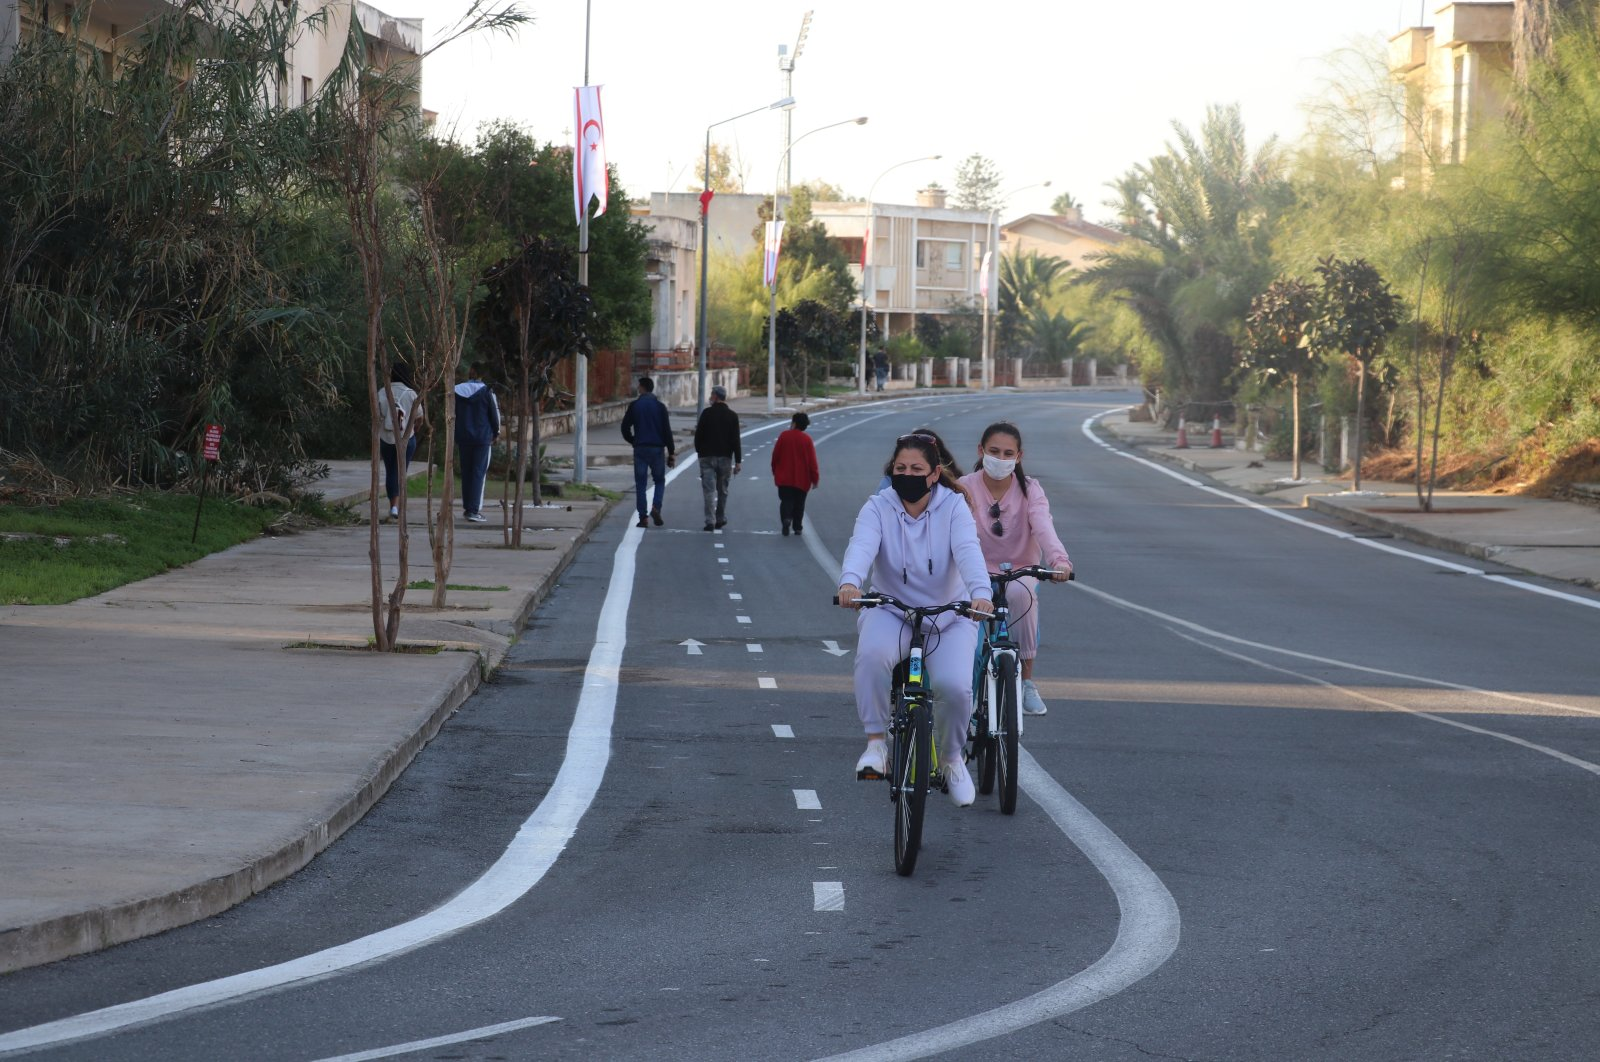 People ride bikes in the Turkish Republic of Northern Cyprus' (TRNC) Varosha city after a partial reopening of the city after 46 years, Nov. 24, 2020. (AA Photo)